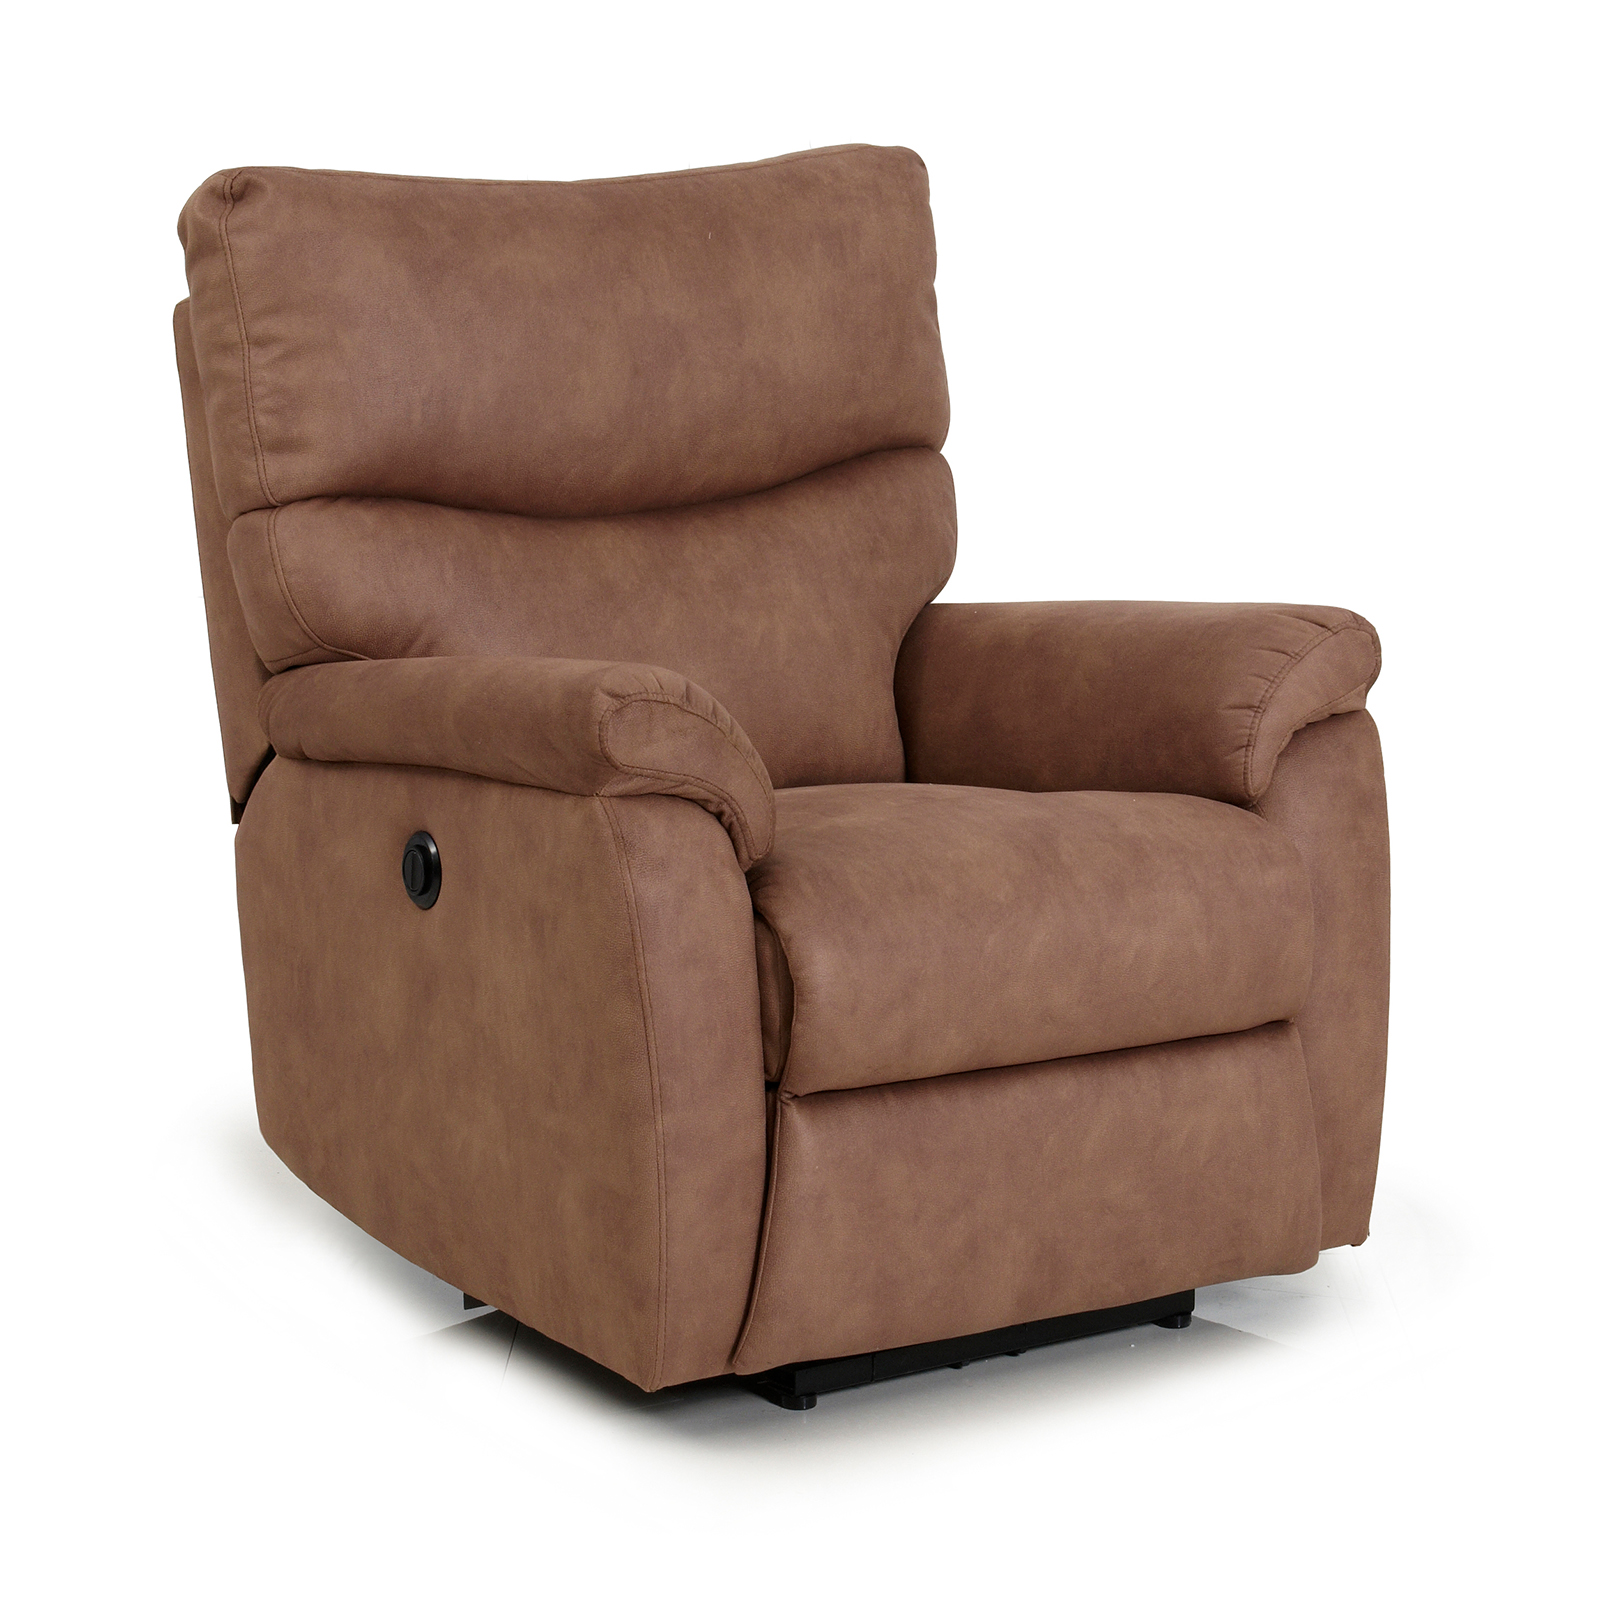 Barcalounger Bourne Ii Power Wall Hugger Recliner At Hayneedle